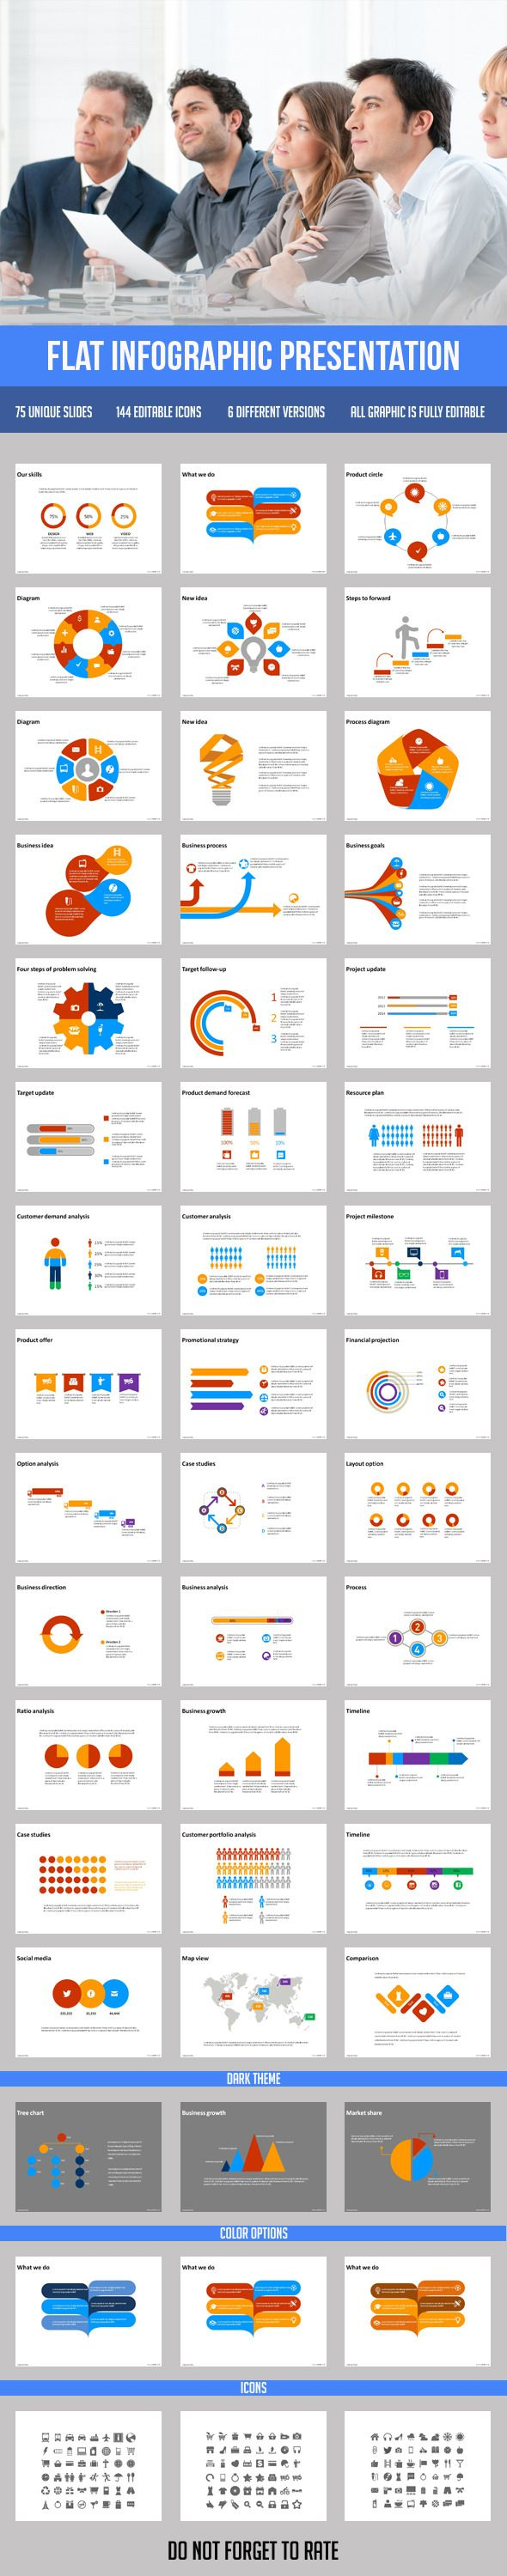 Flat Infographic Presentation - Business PowerPoint Templates